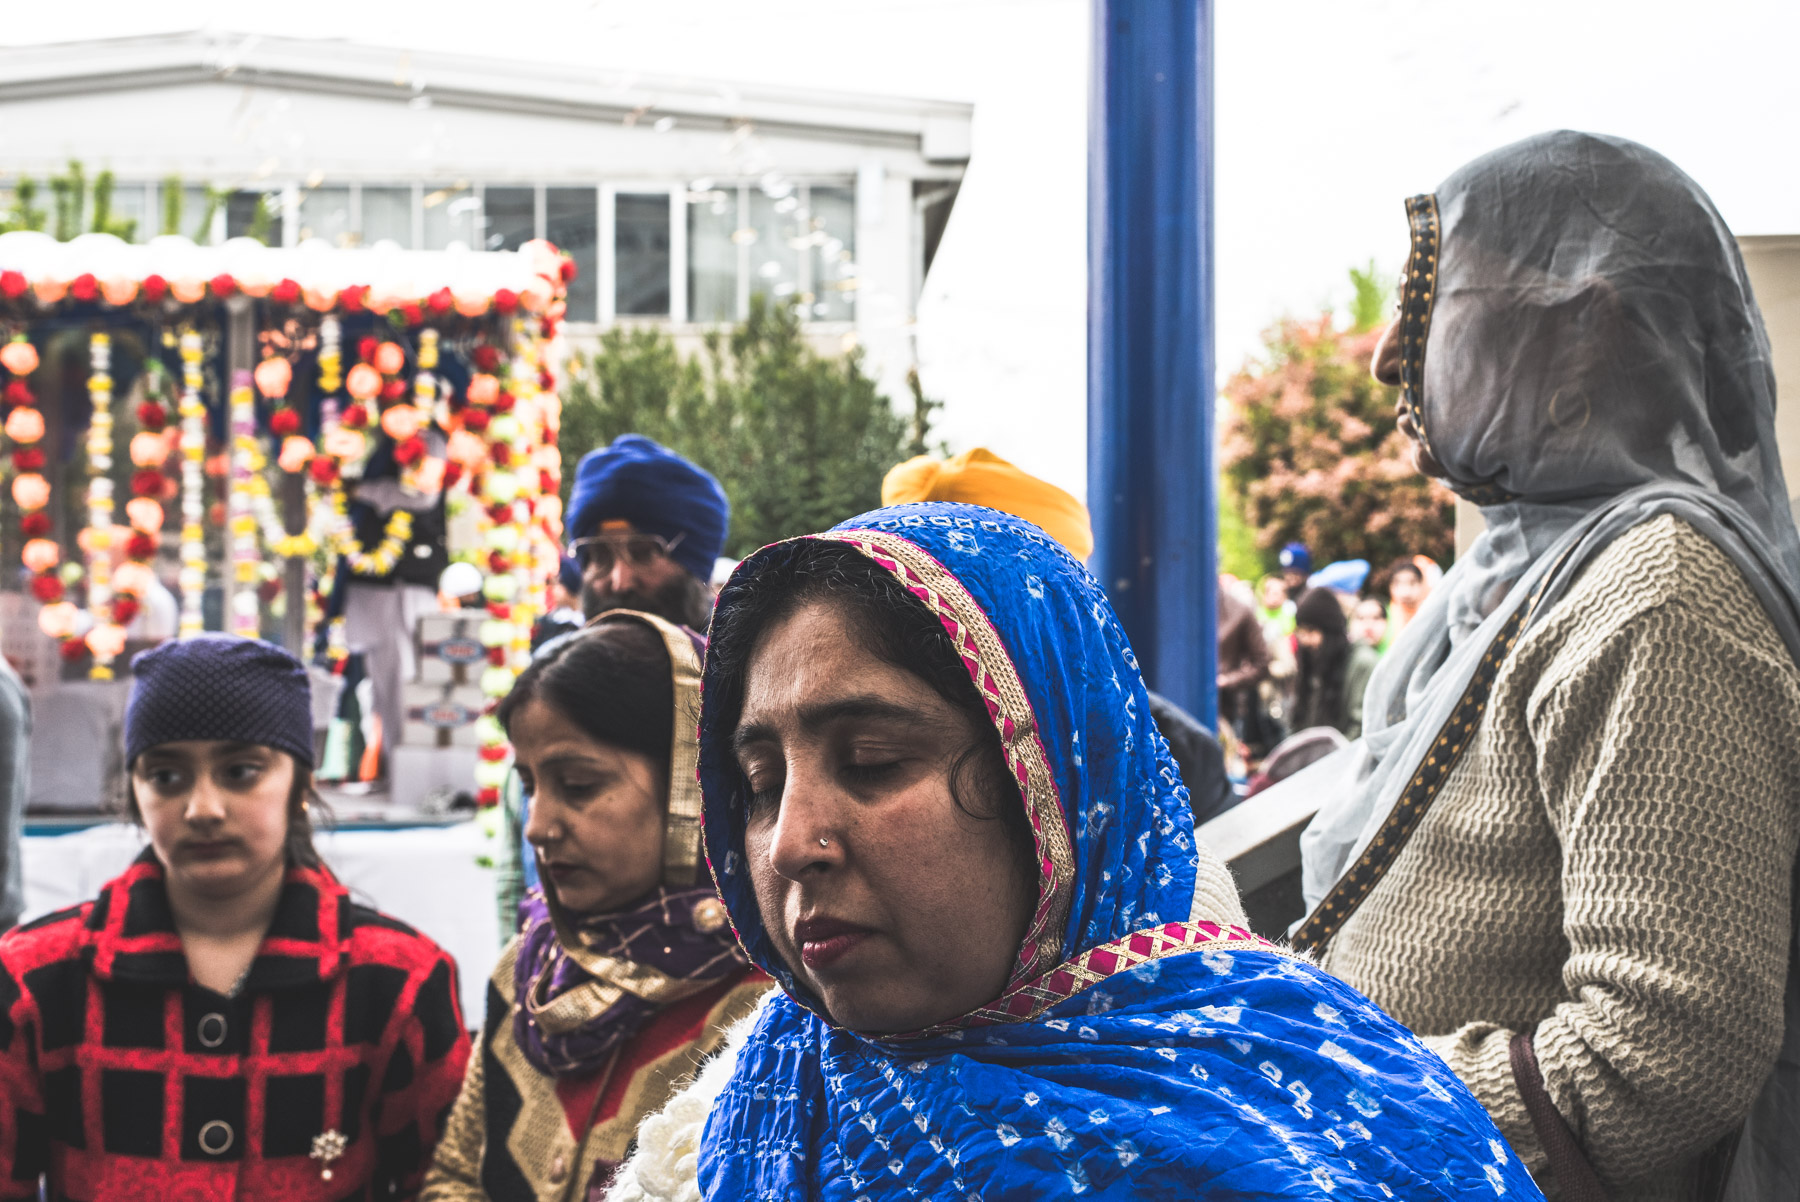 Sikh people attending the Vaisakhi celebration in the city of Novellara